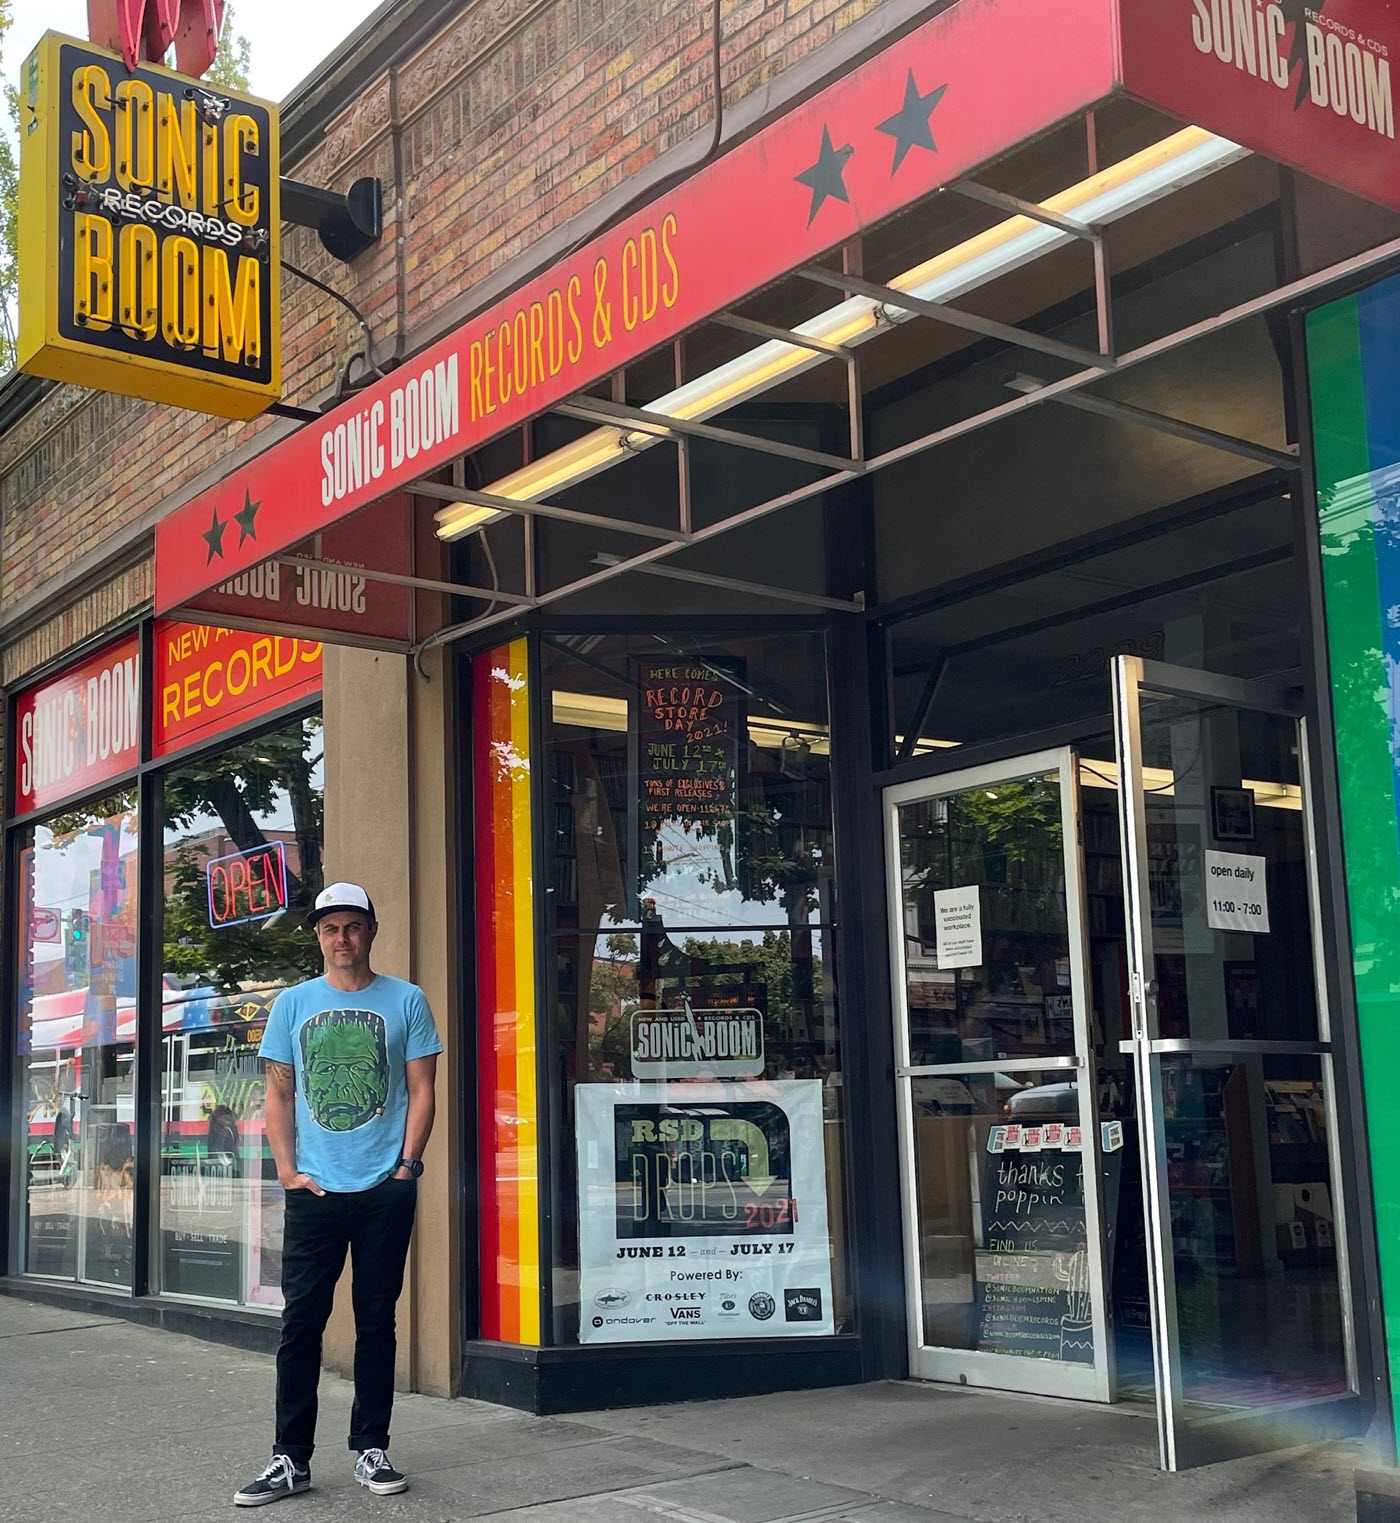 """Man in graphic t-shirt, jeans and cap standing in front of urban record store with signage indicating it is """"Sonic Boom Records & CDs""""."""